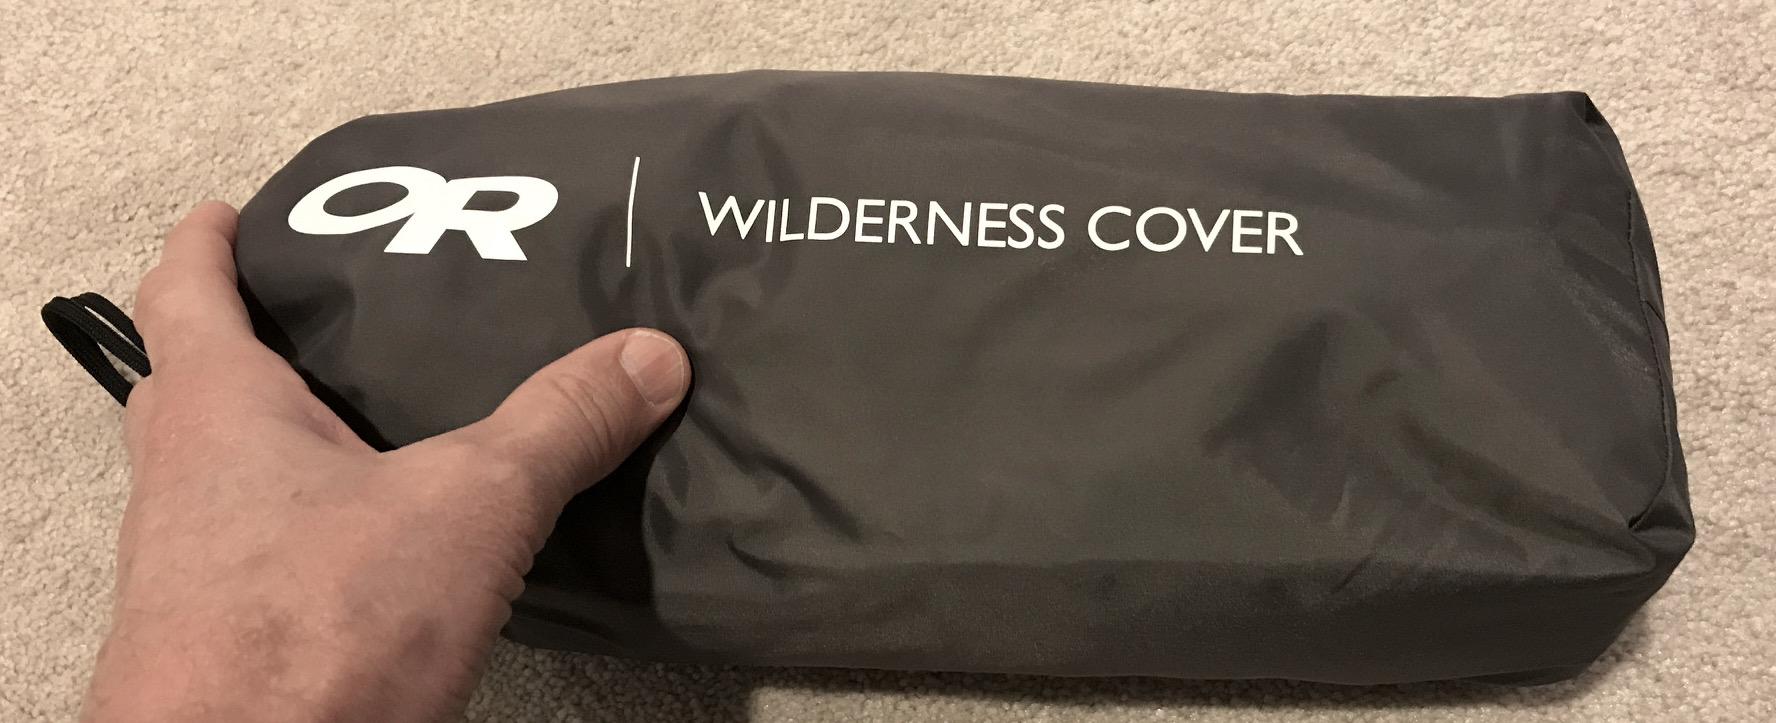 The packed size of the OR Wilderness Cover